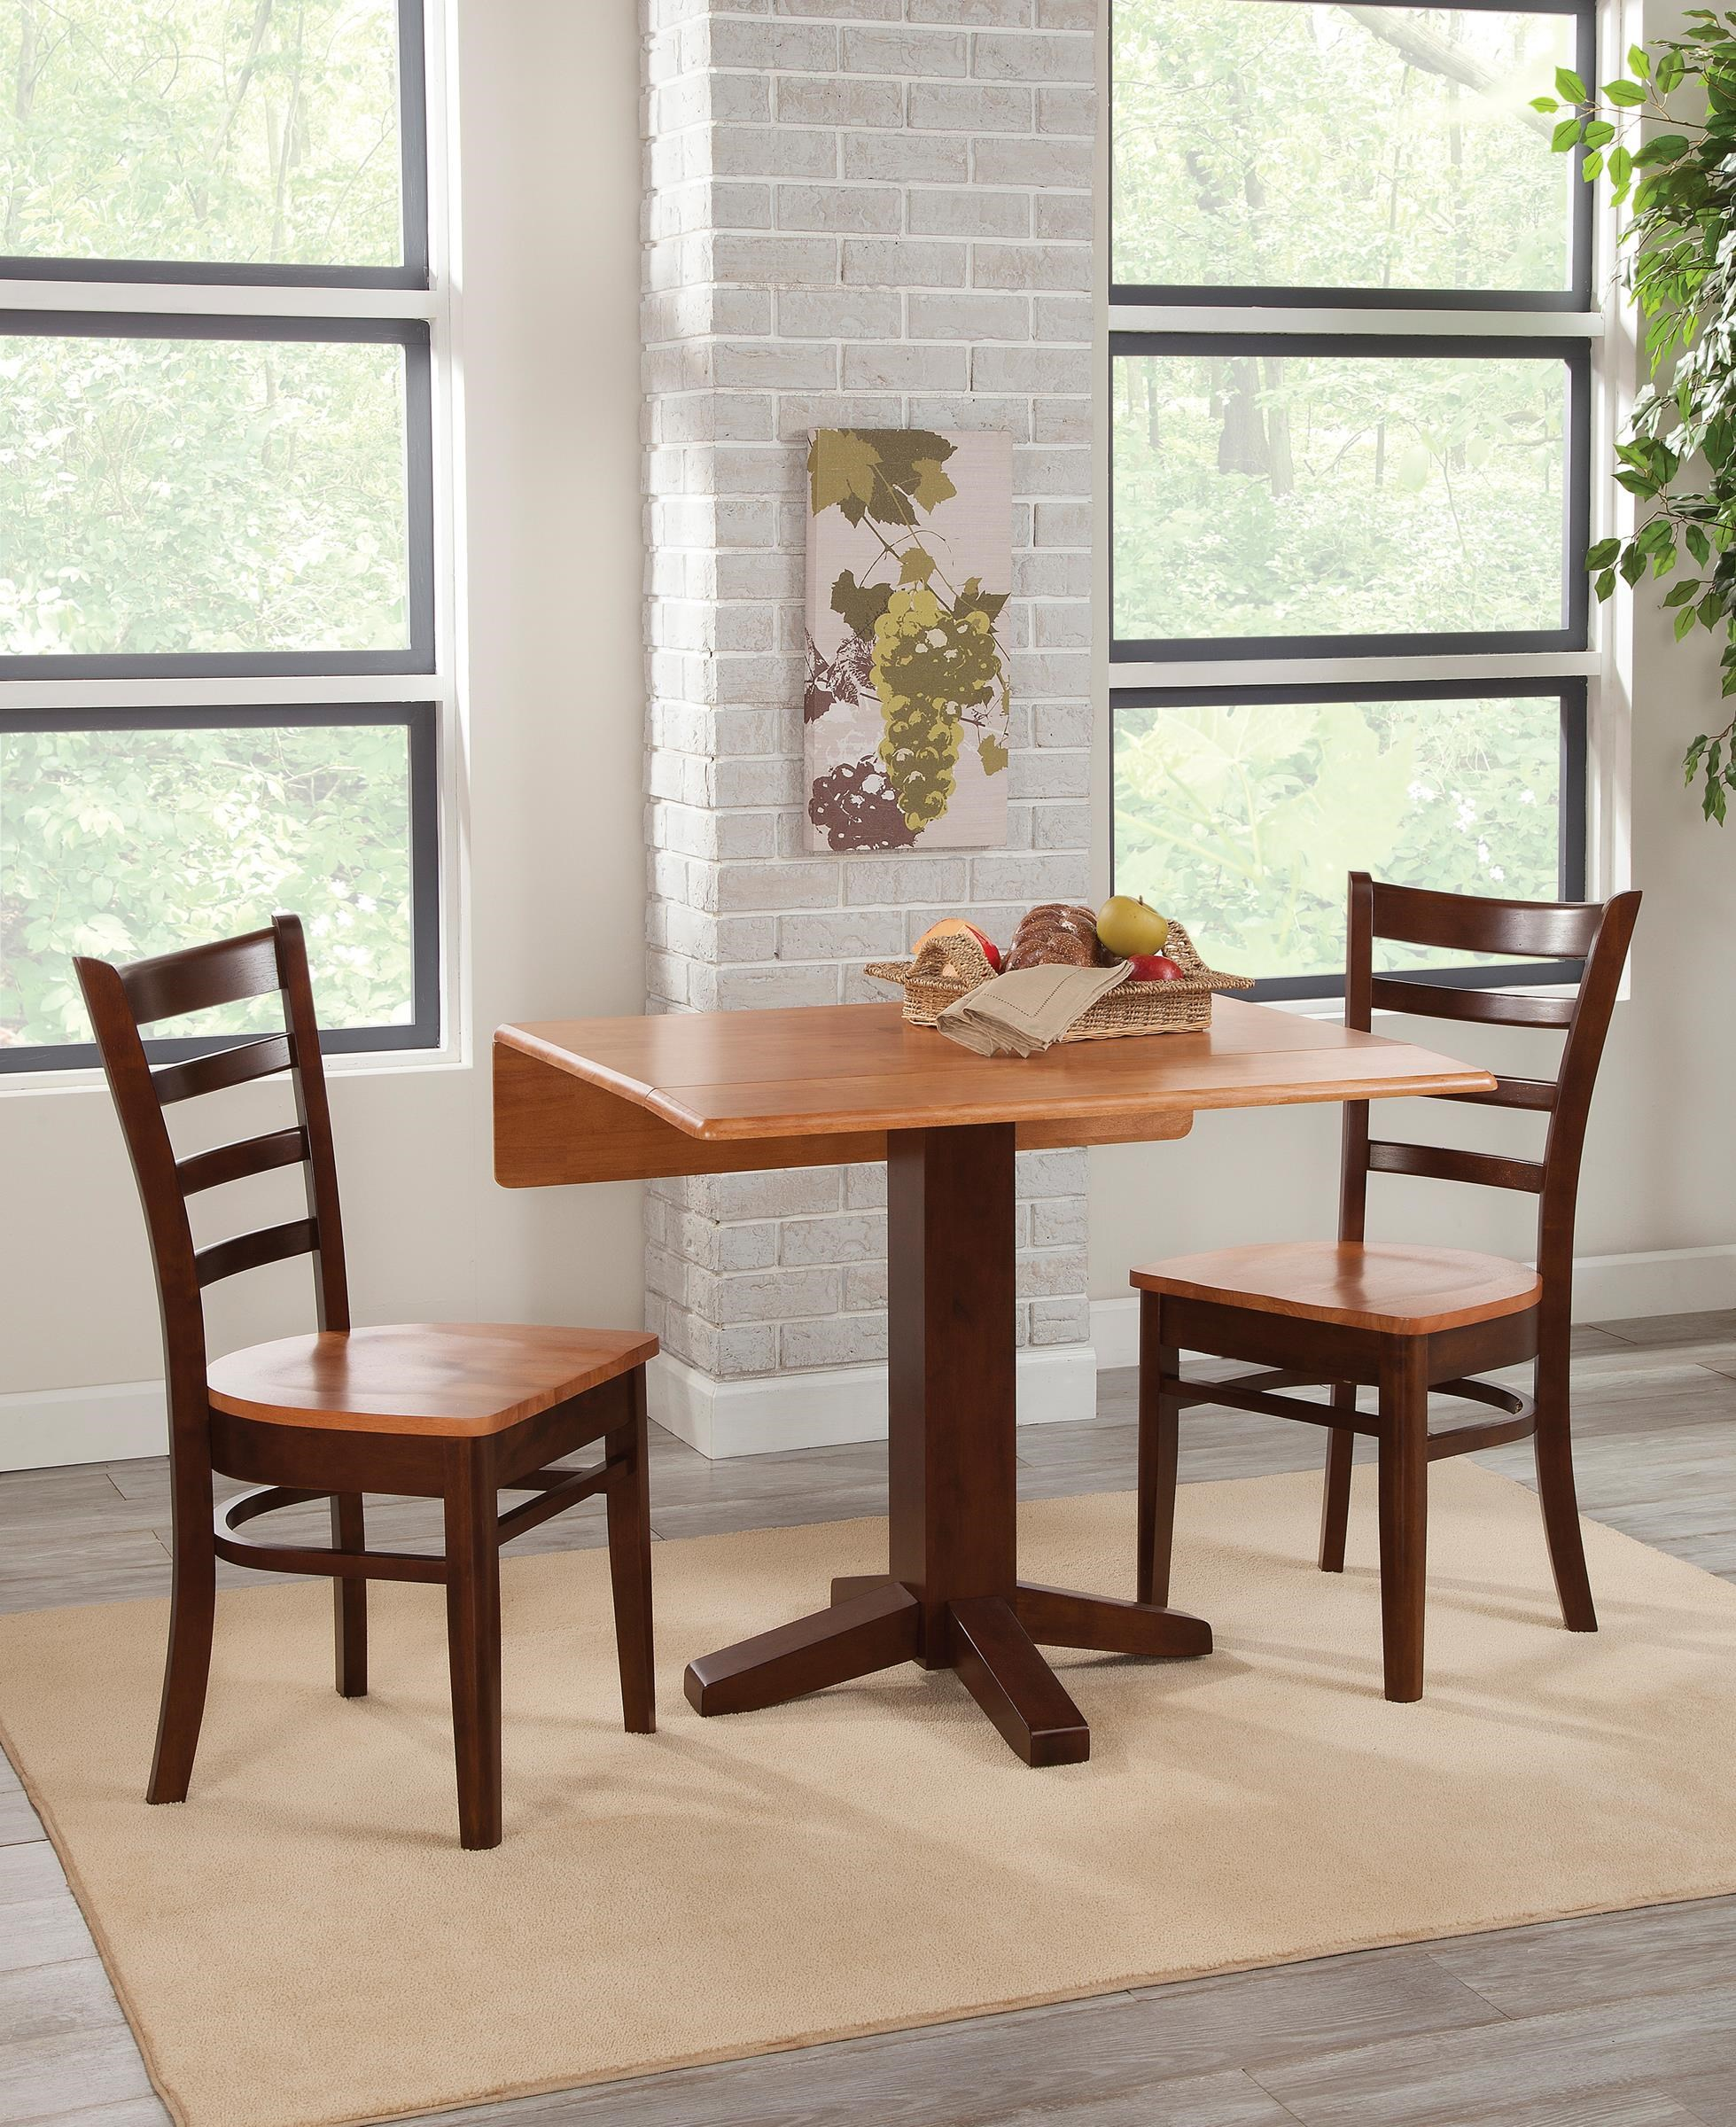 3 pc Dining Set--Table and 2 Side Chairs & 3 pc Dining Set--Table and 2 Side Chairs by John Thomas | Wolf and ...